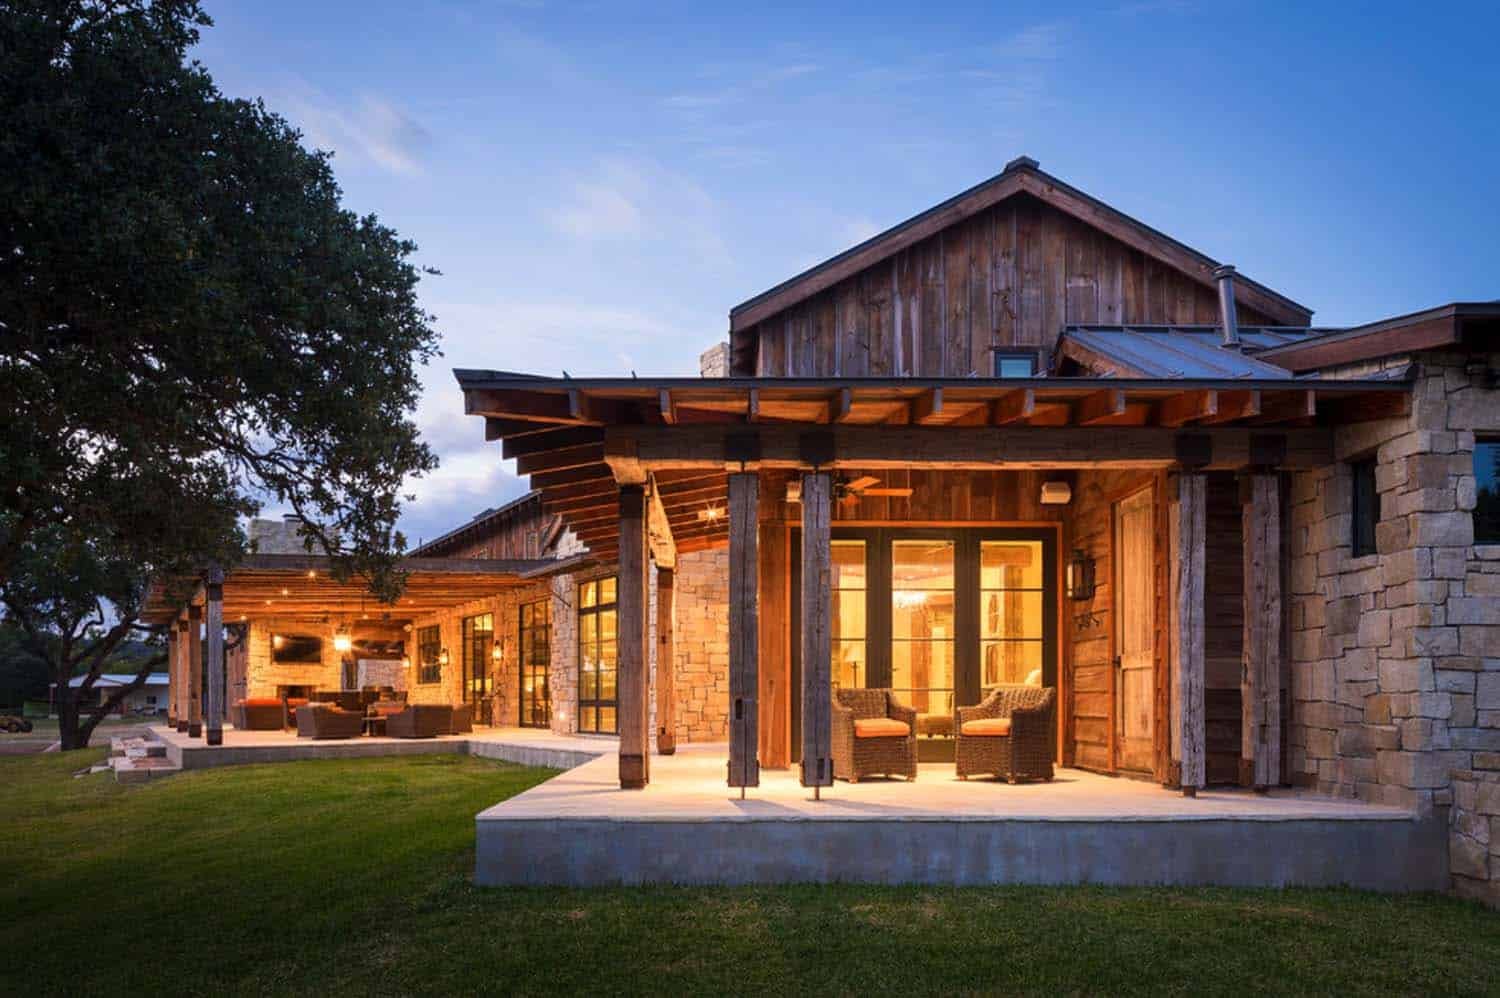 Modern rustic barn style retreat in texas hill country for Hill country architecture